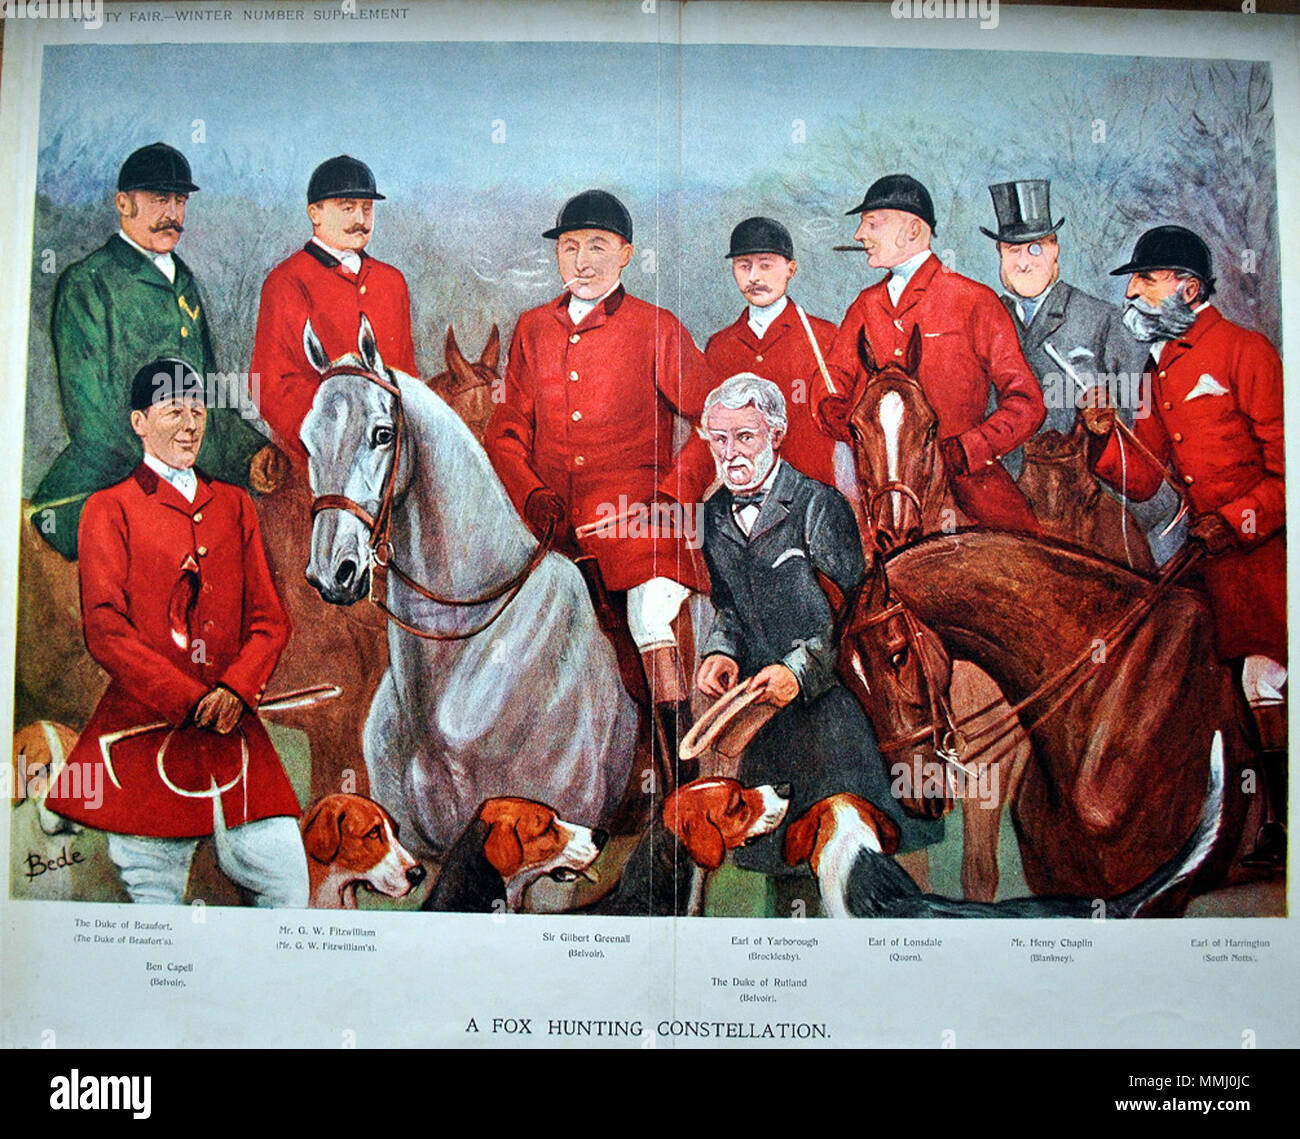 . Winter supplement: Group of hunters, double print. Caption reads: 'A Fox Hunting Constellation' Duke of Beaufort (The Duke of Beaufort's), Ben Capell (Belvoir), G.W. Fitzwilliam (Mr. G.W. Fitzwilliam's), Sir Gilbert Greenall (Belvoir), The Earl of Yarborough (Brocklesby), Duke of Rutland (Belvoir), Earl of Lonsdale (Quorn), Henry Chaplin (Blankney) and the Earl of Harrington (South Notts).  . 7 December 1905. 'Bede' (unidentified) Group of hunters, Vanity Fair, 1905-12-07 - Stock Image